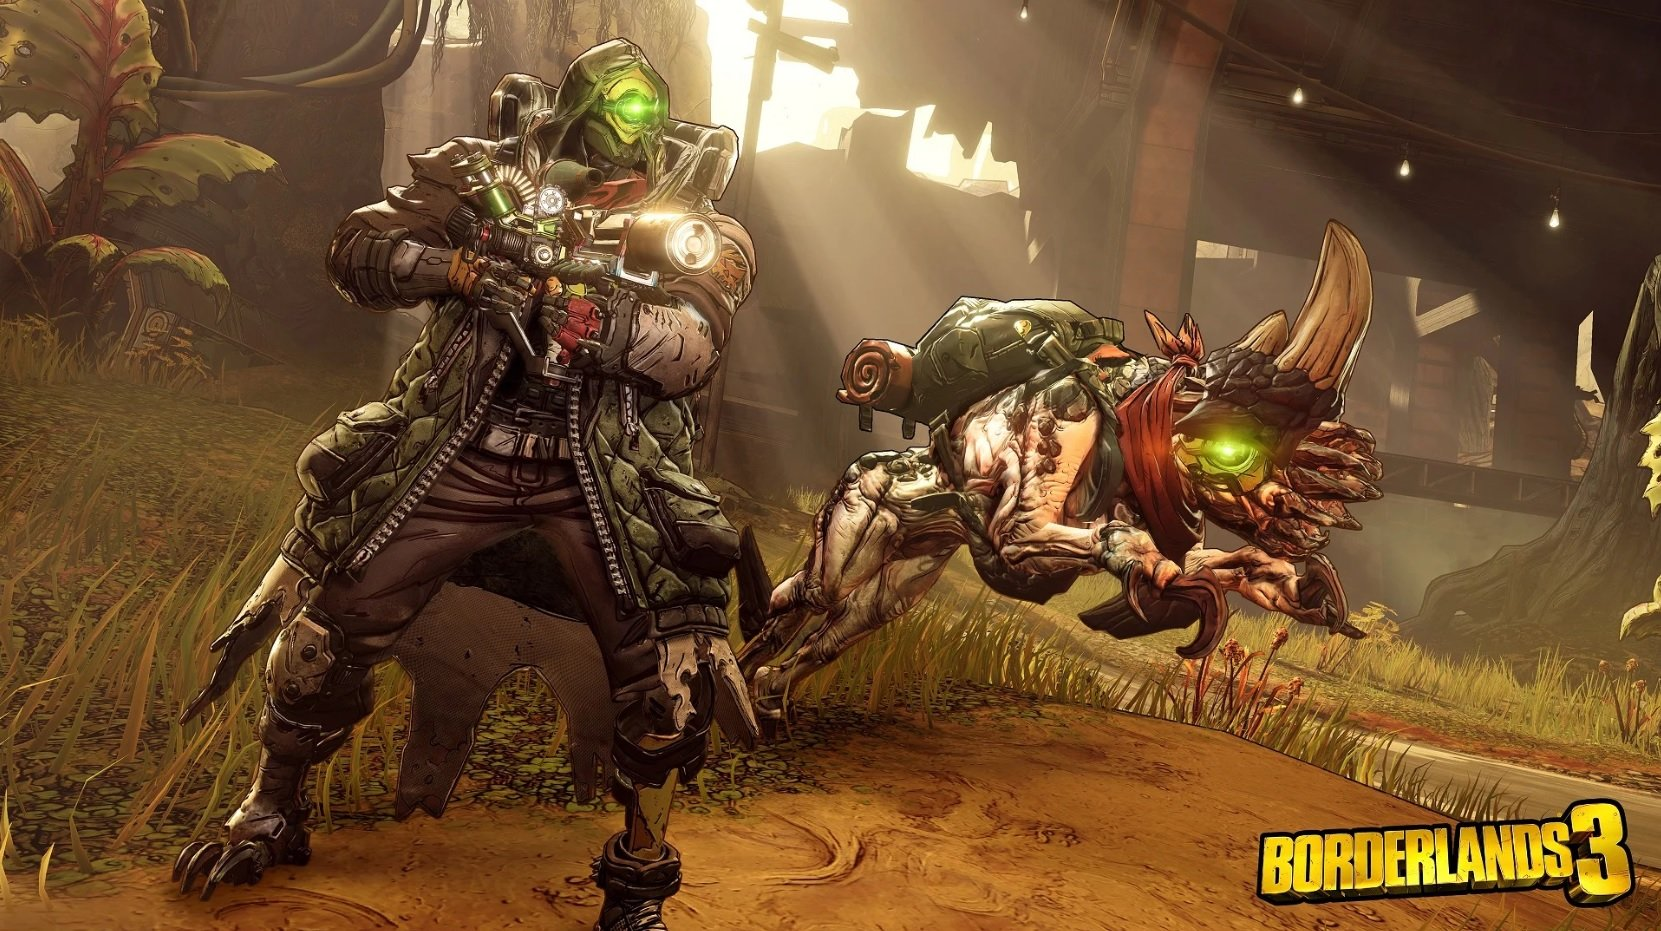 Borderlands 3 might include alternate box art of a Psycho with three finger guns screenshot